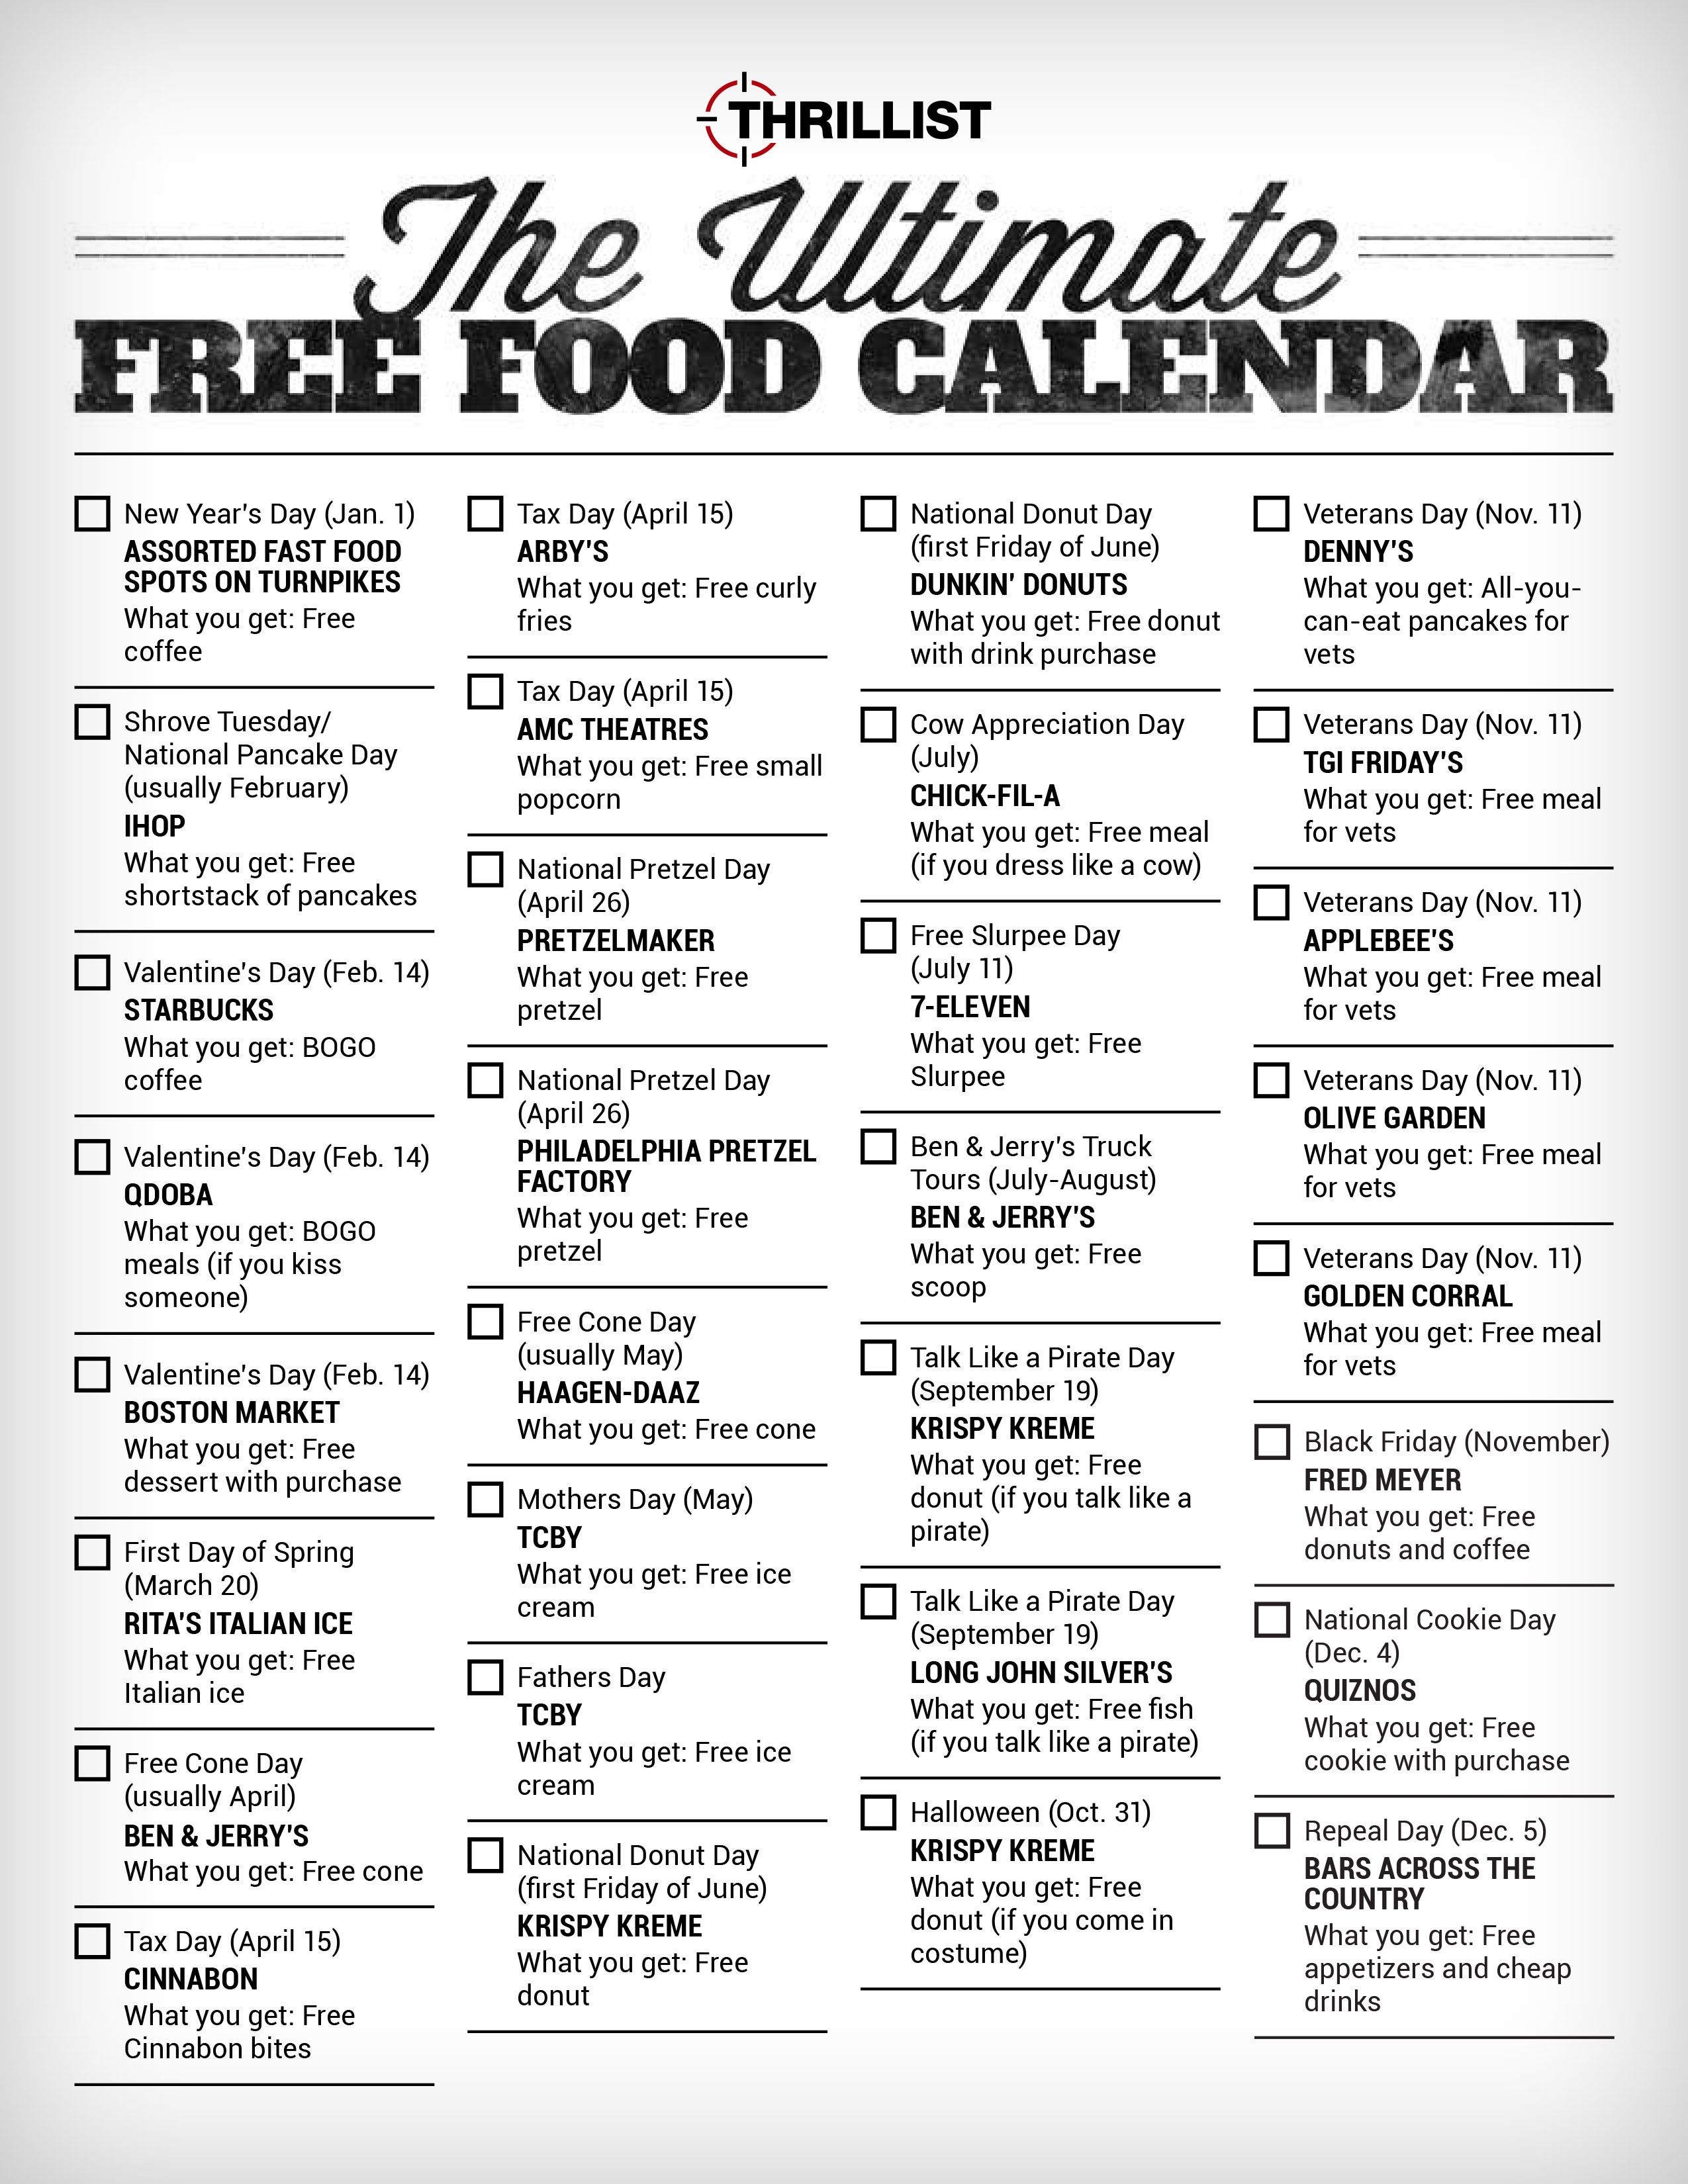 Pin by Esther Kim on Useful Information in 2019 | National food